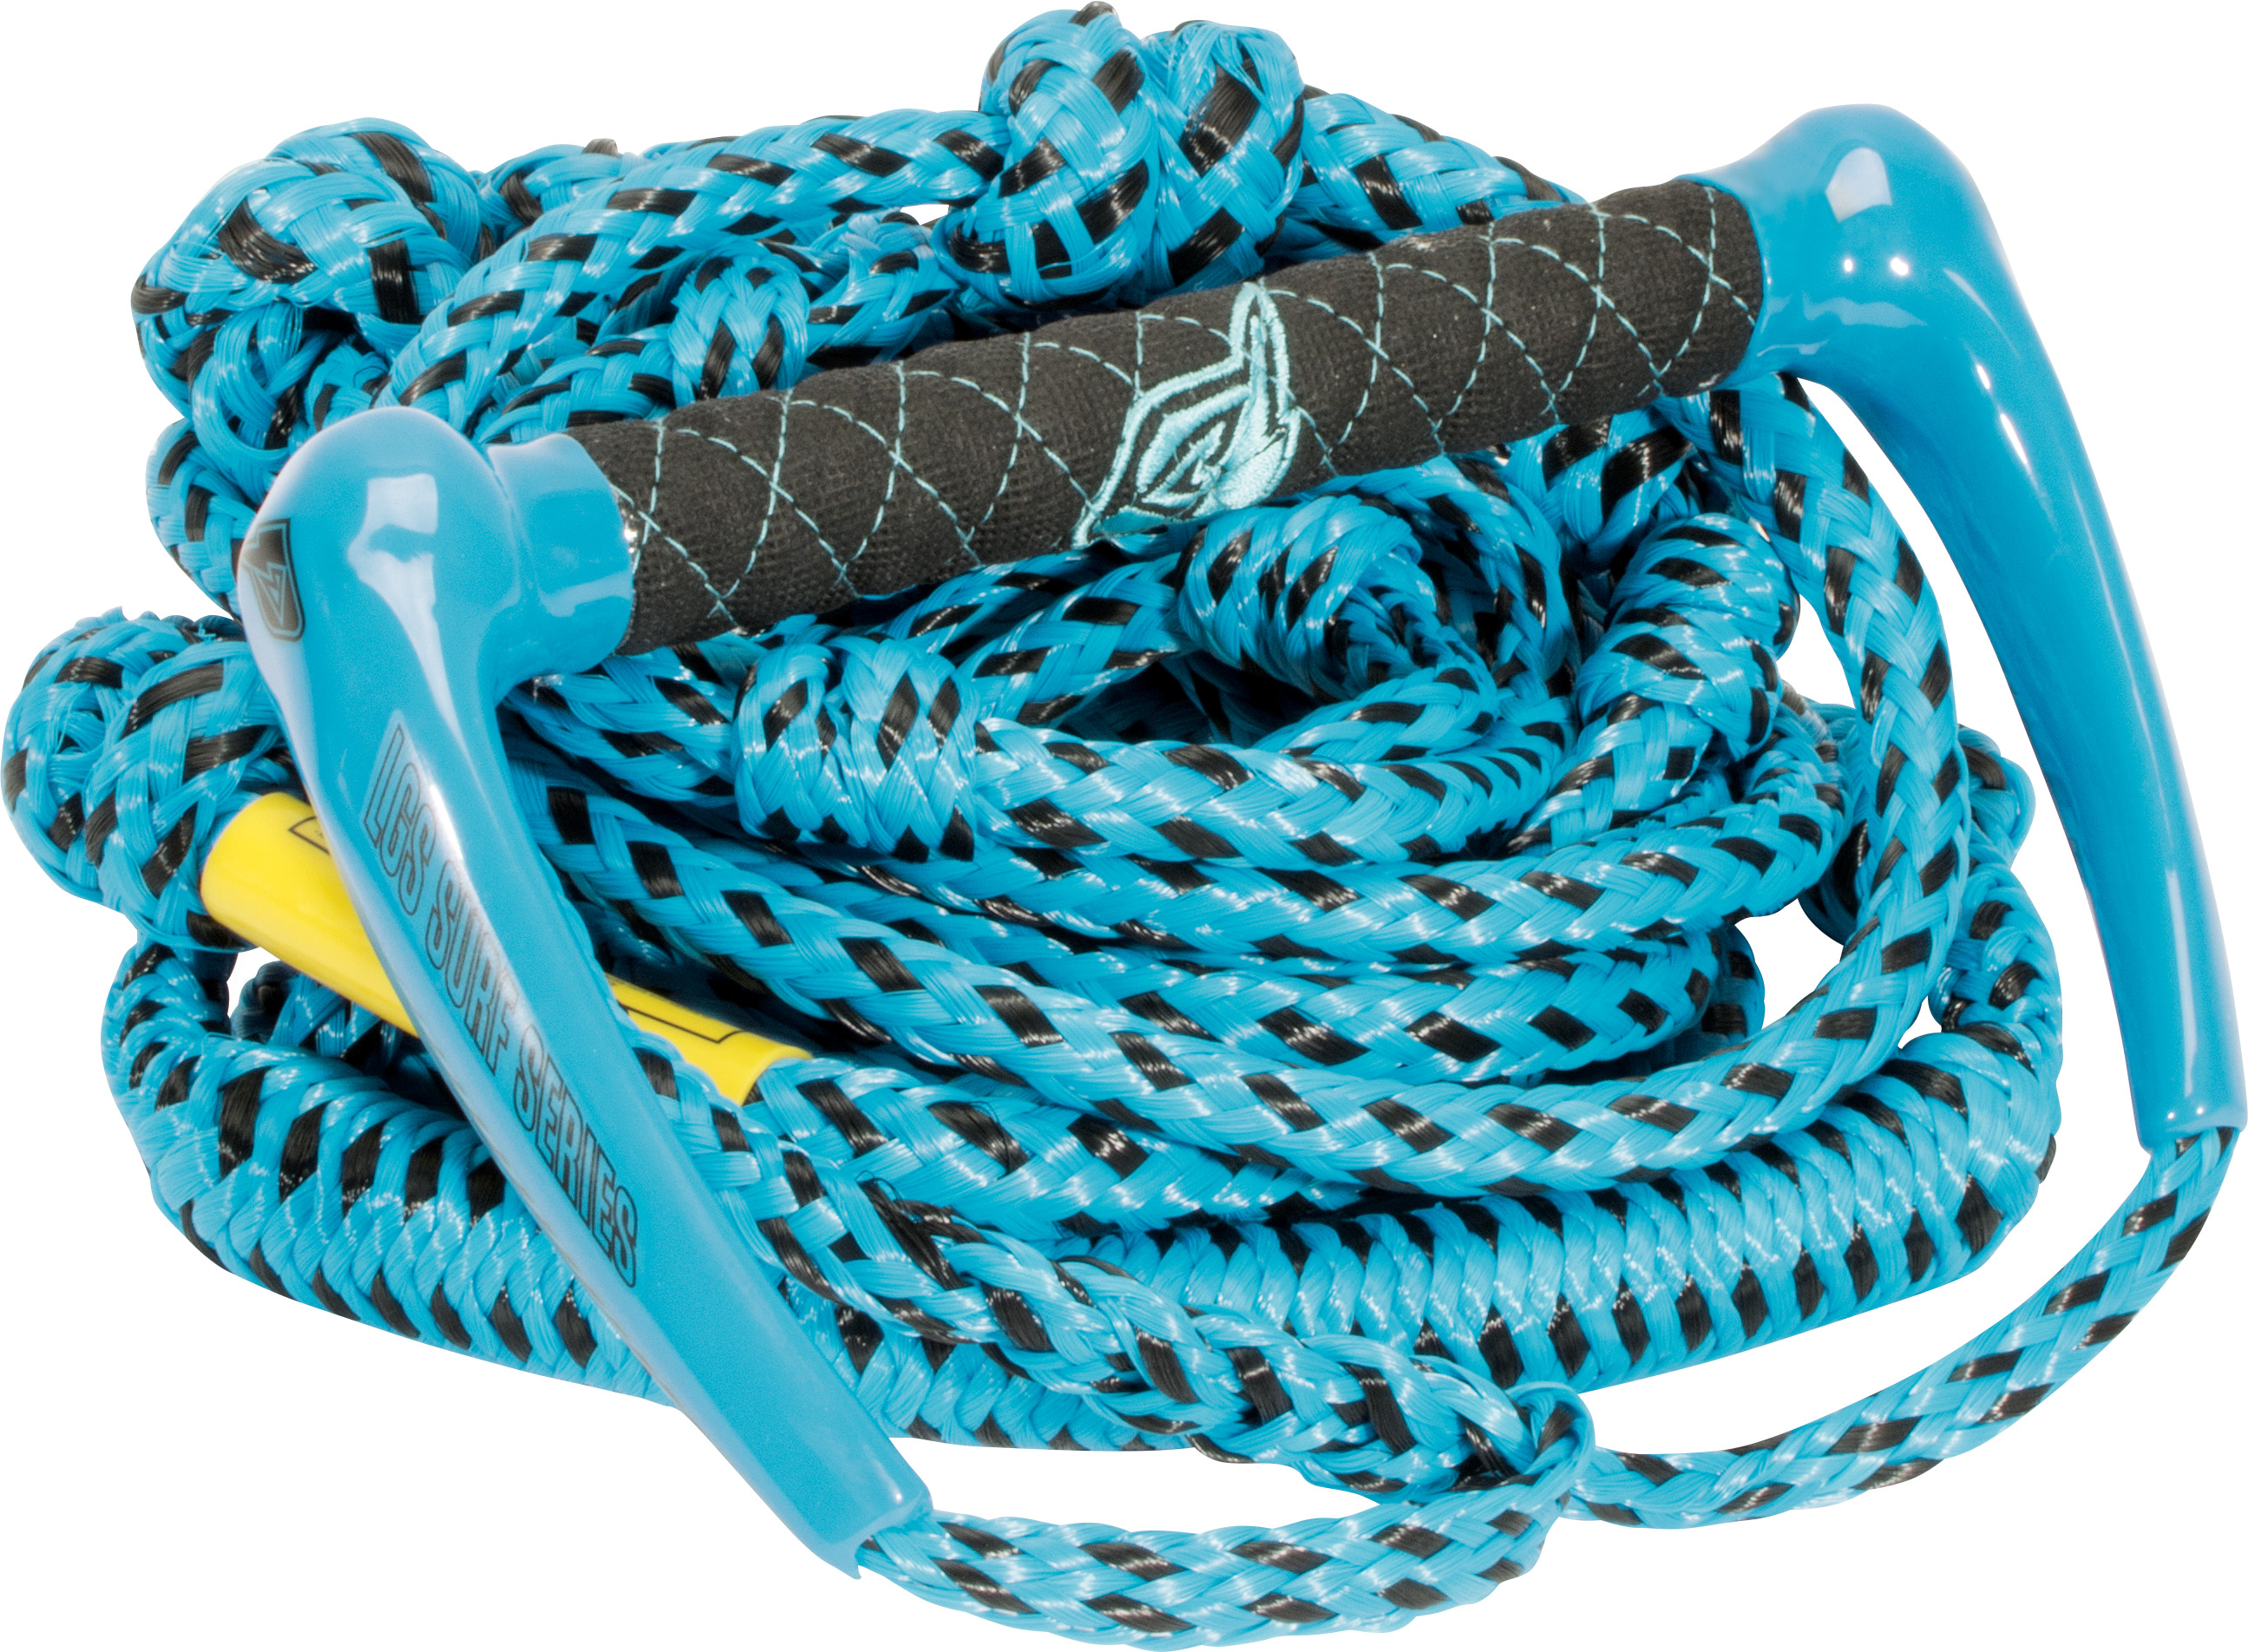 25' LGS BUNGEE SURF ROPE W/HANDLE PACKAGE  - BLUE CONNELLY 2018